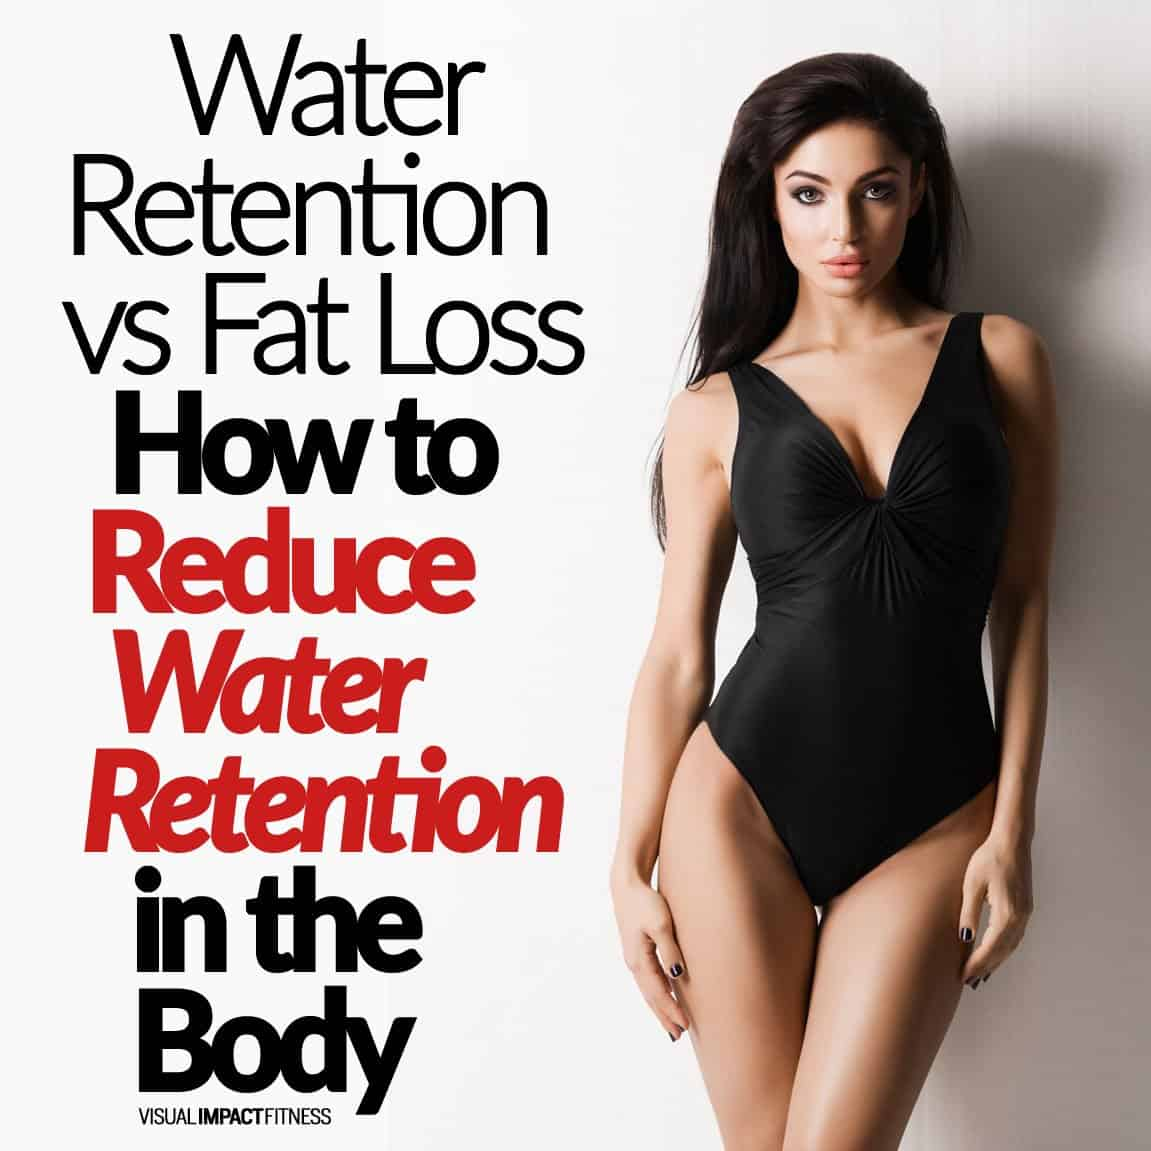 Water Retention vs Fat Loss | How To Reduce Water Retention in The Body